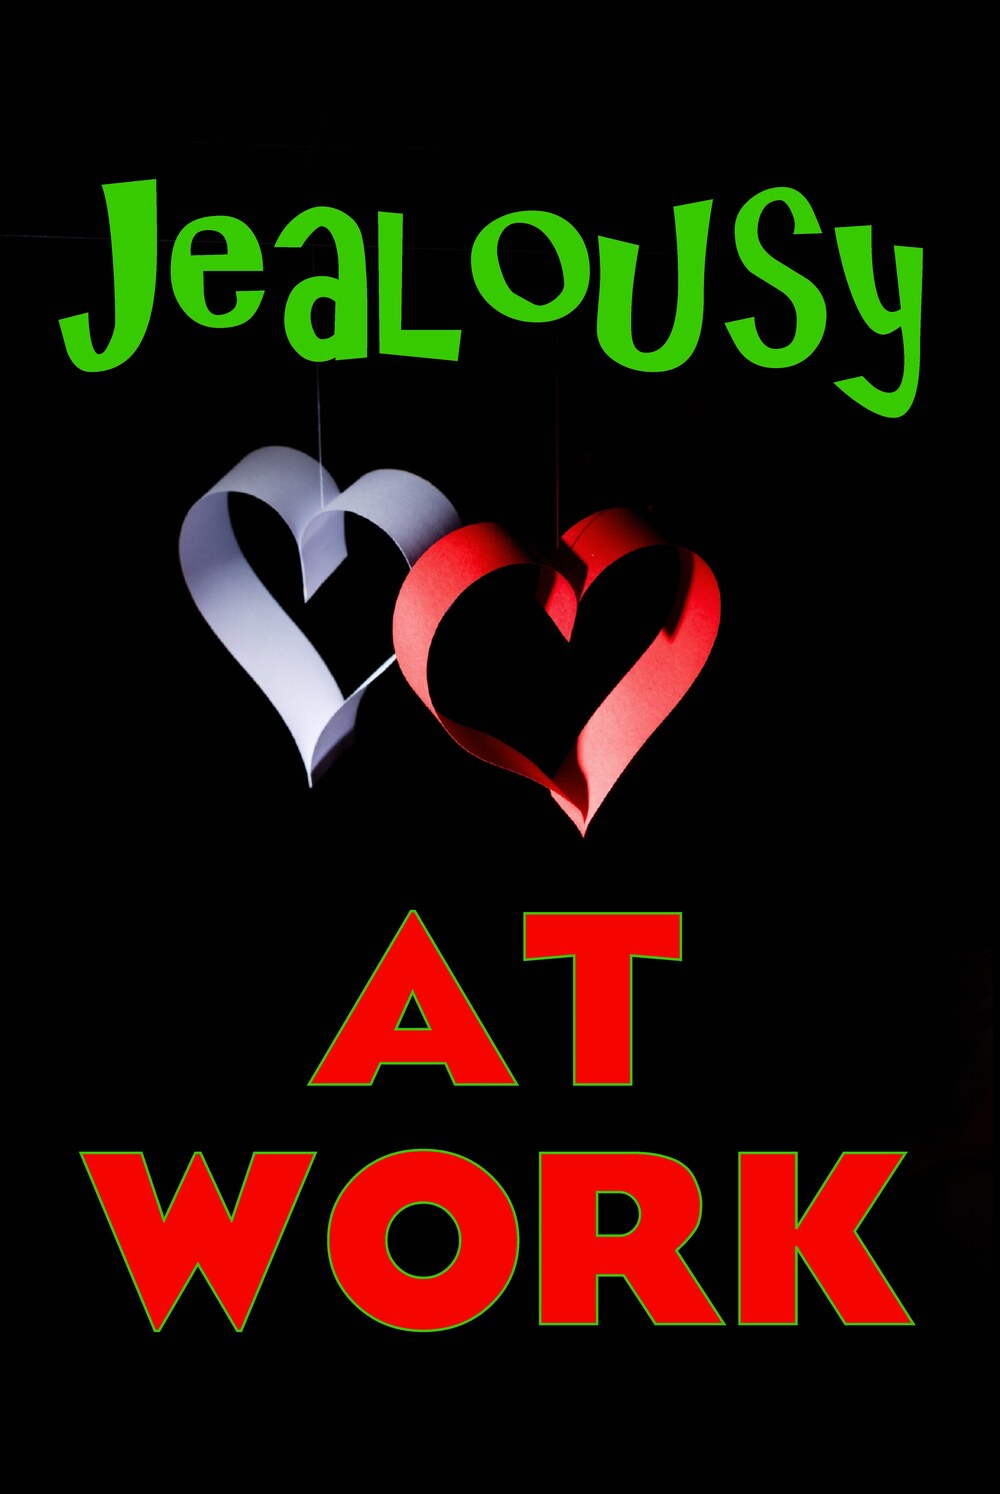 L7015 - Jealousy at Work